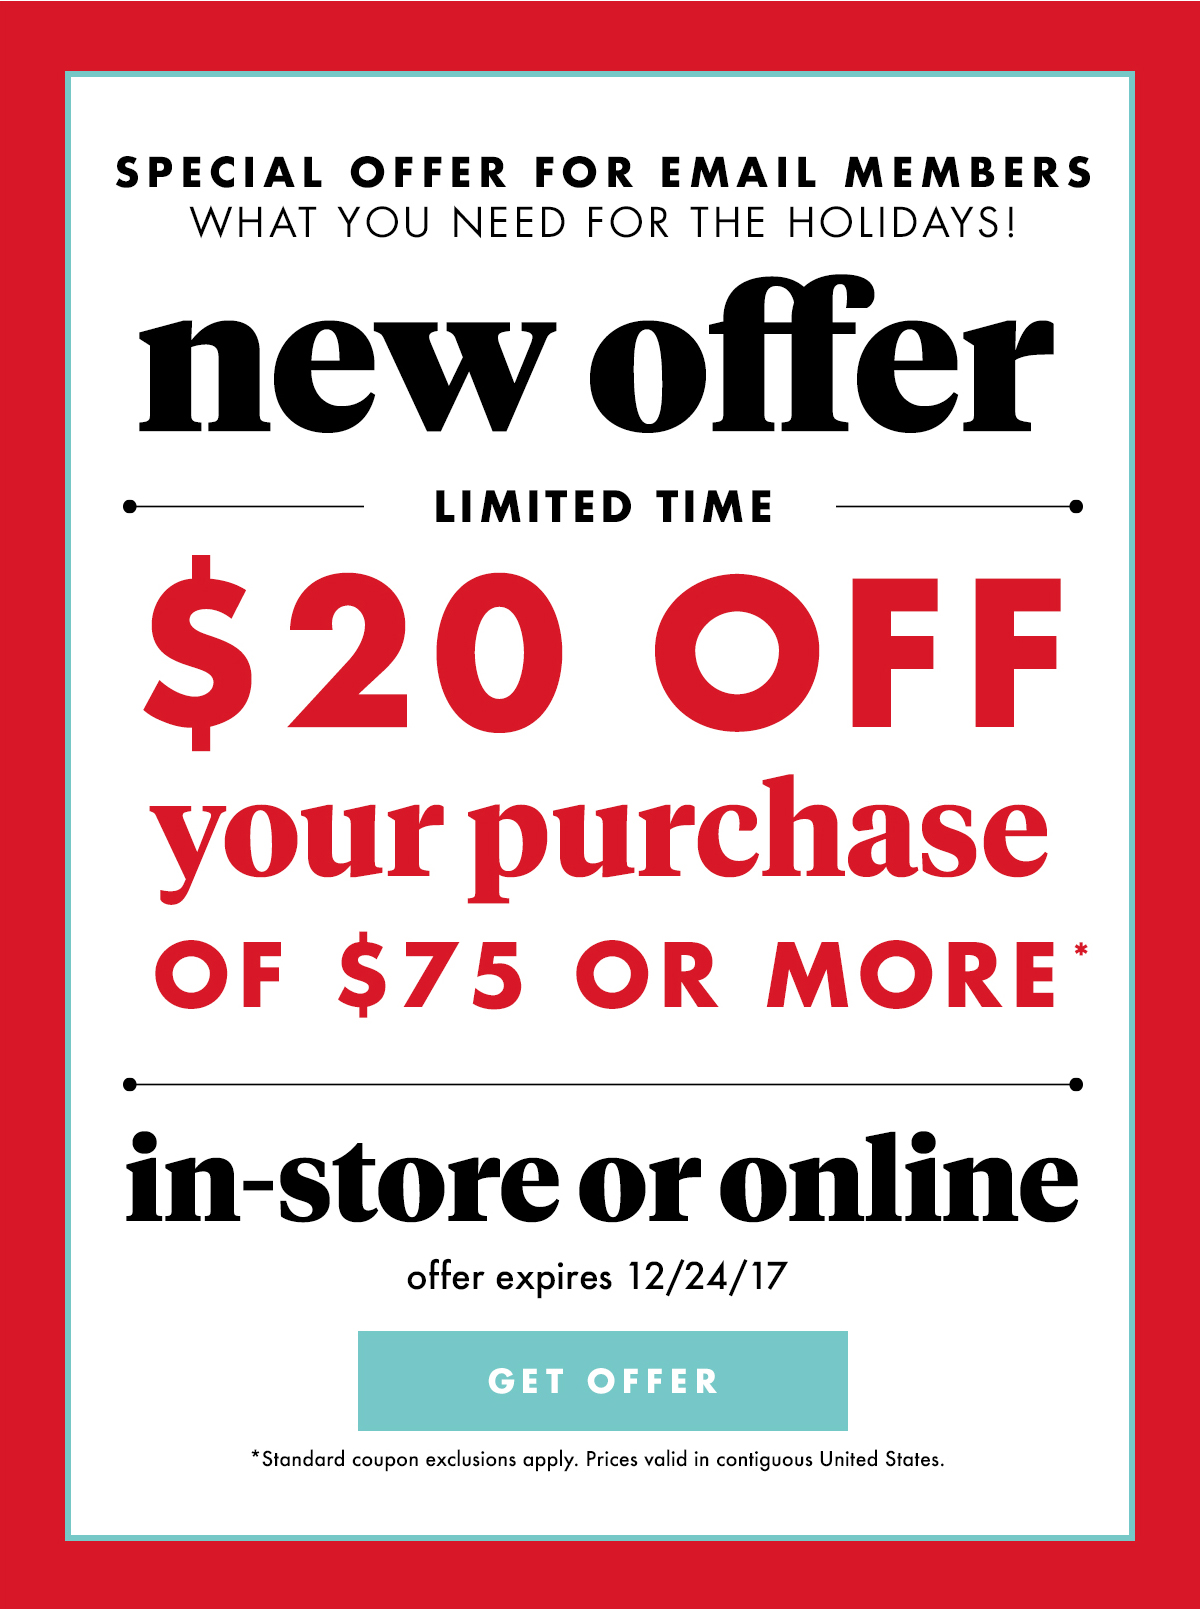 Bed Bath and Beyond NEW OFFER OFF INSIDE